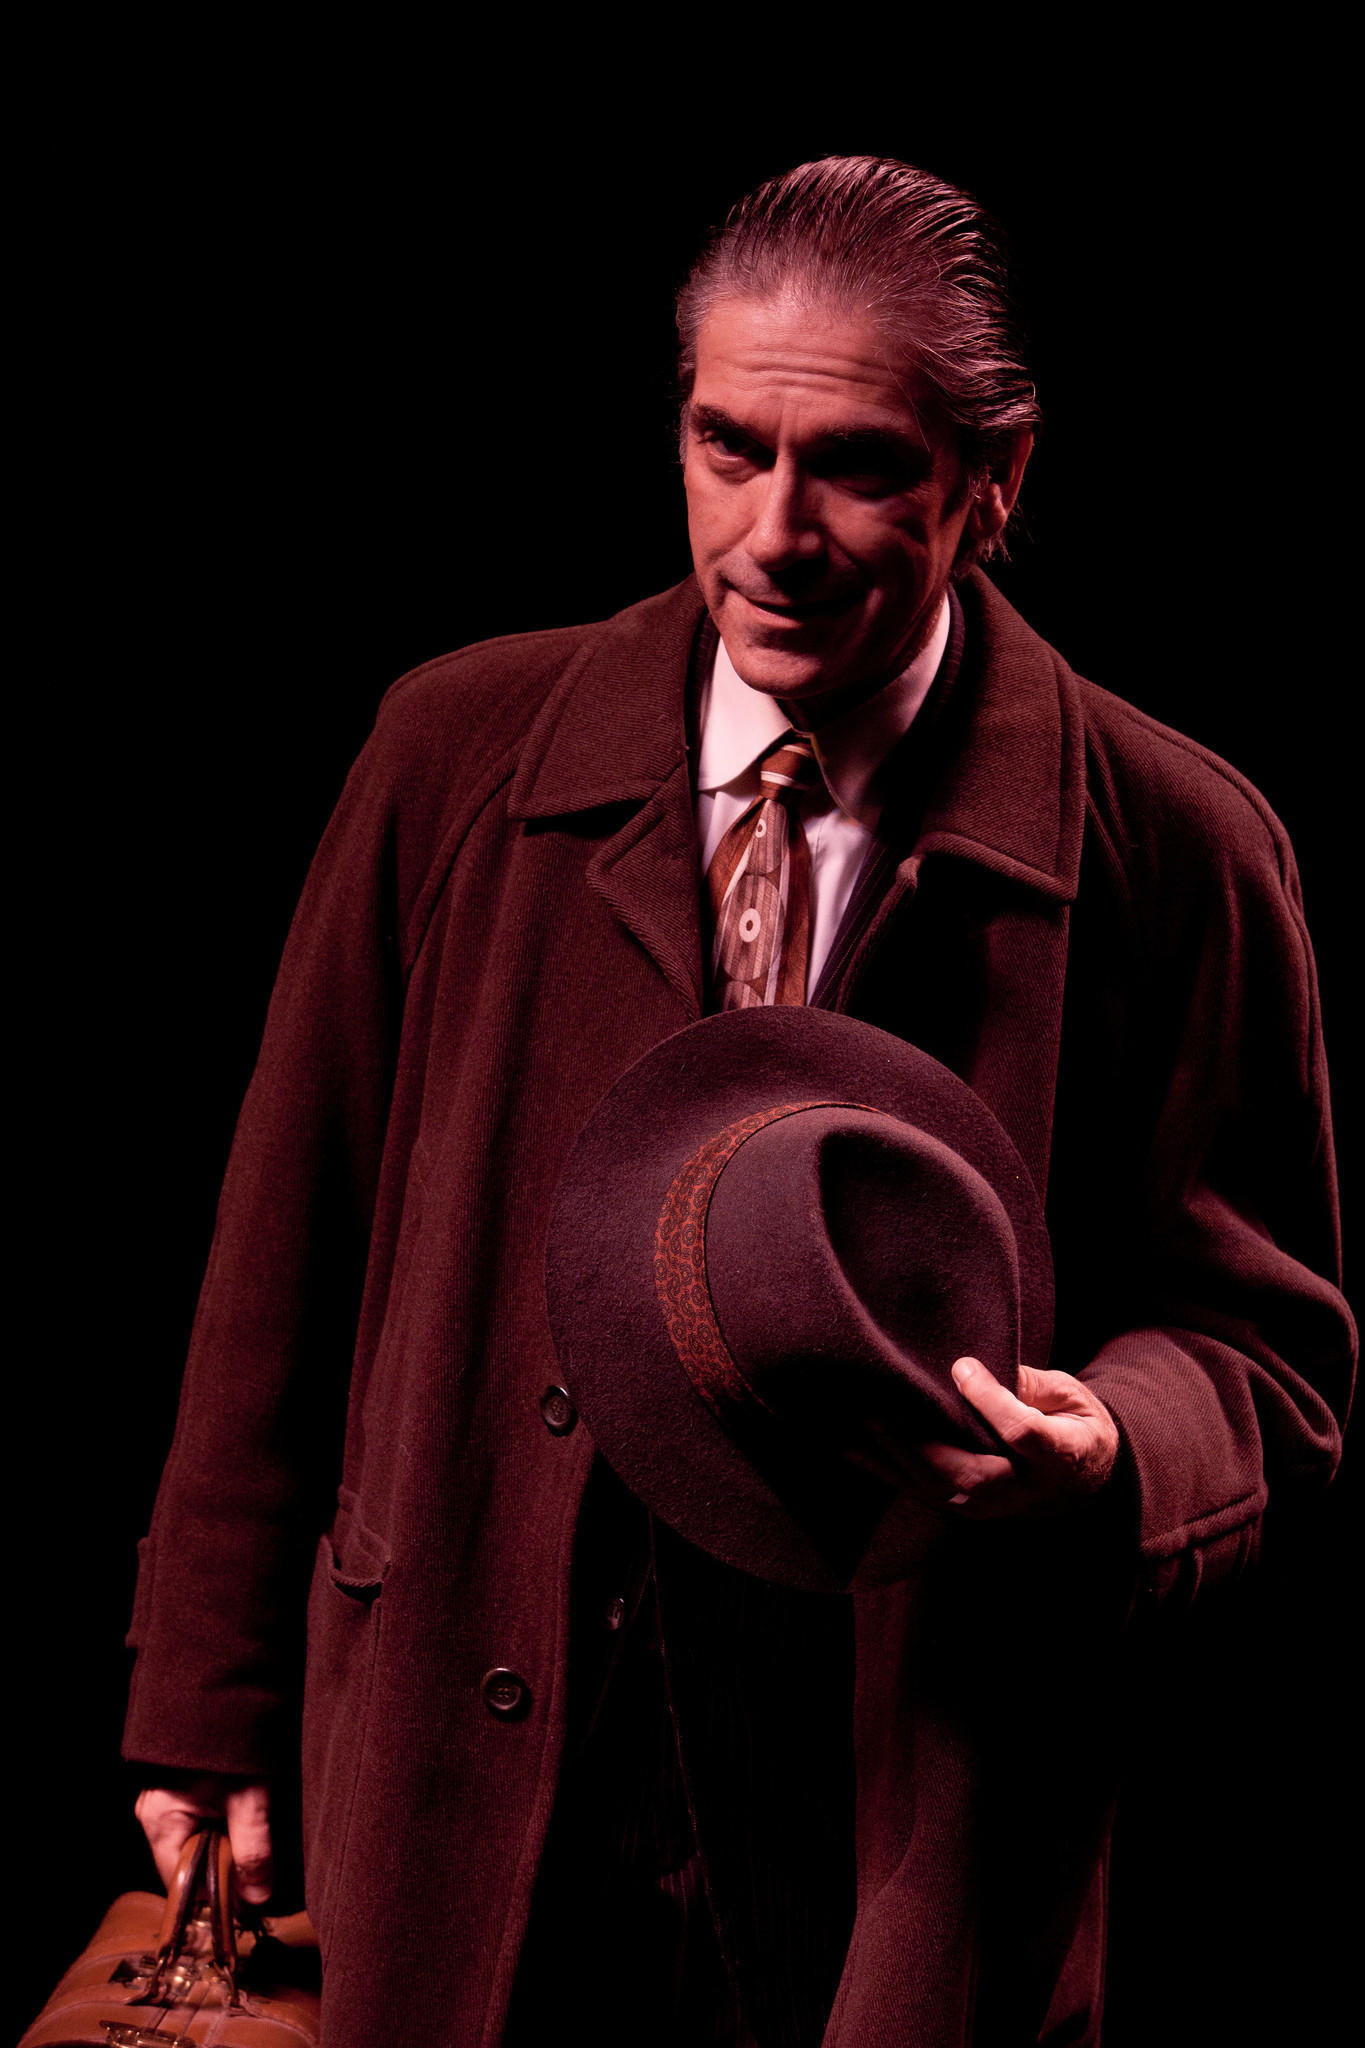 marginalization of women and arthur millers play death of a salesman The woman in death of a salesman: analysis & significance  these techniques contribute to a fluid sense of time in miller's play  and purpose of flashbacks in death of a salesman by arthur .